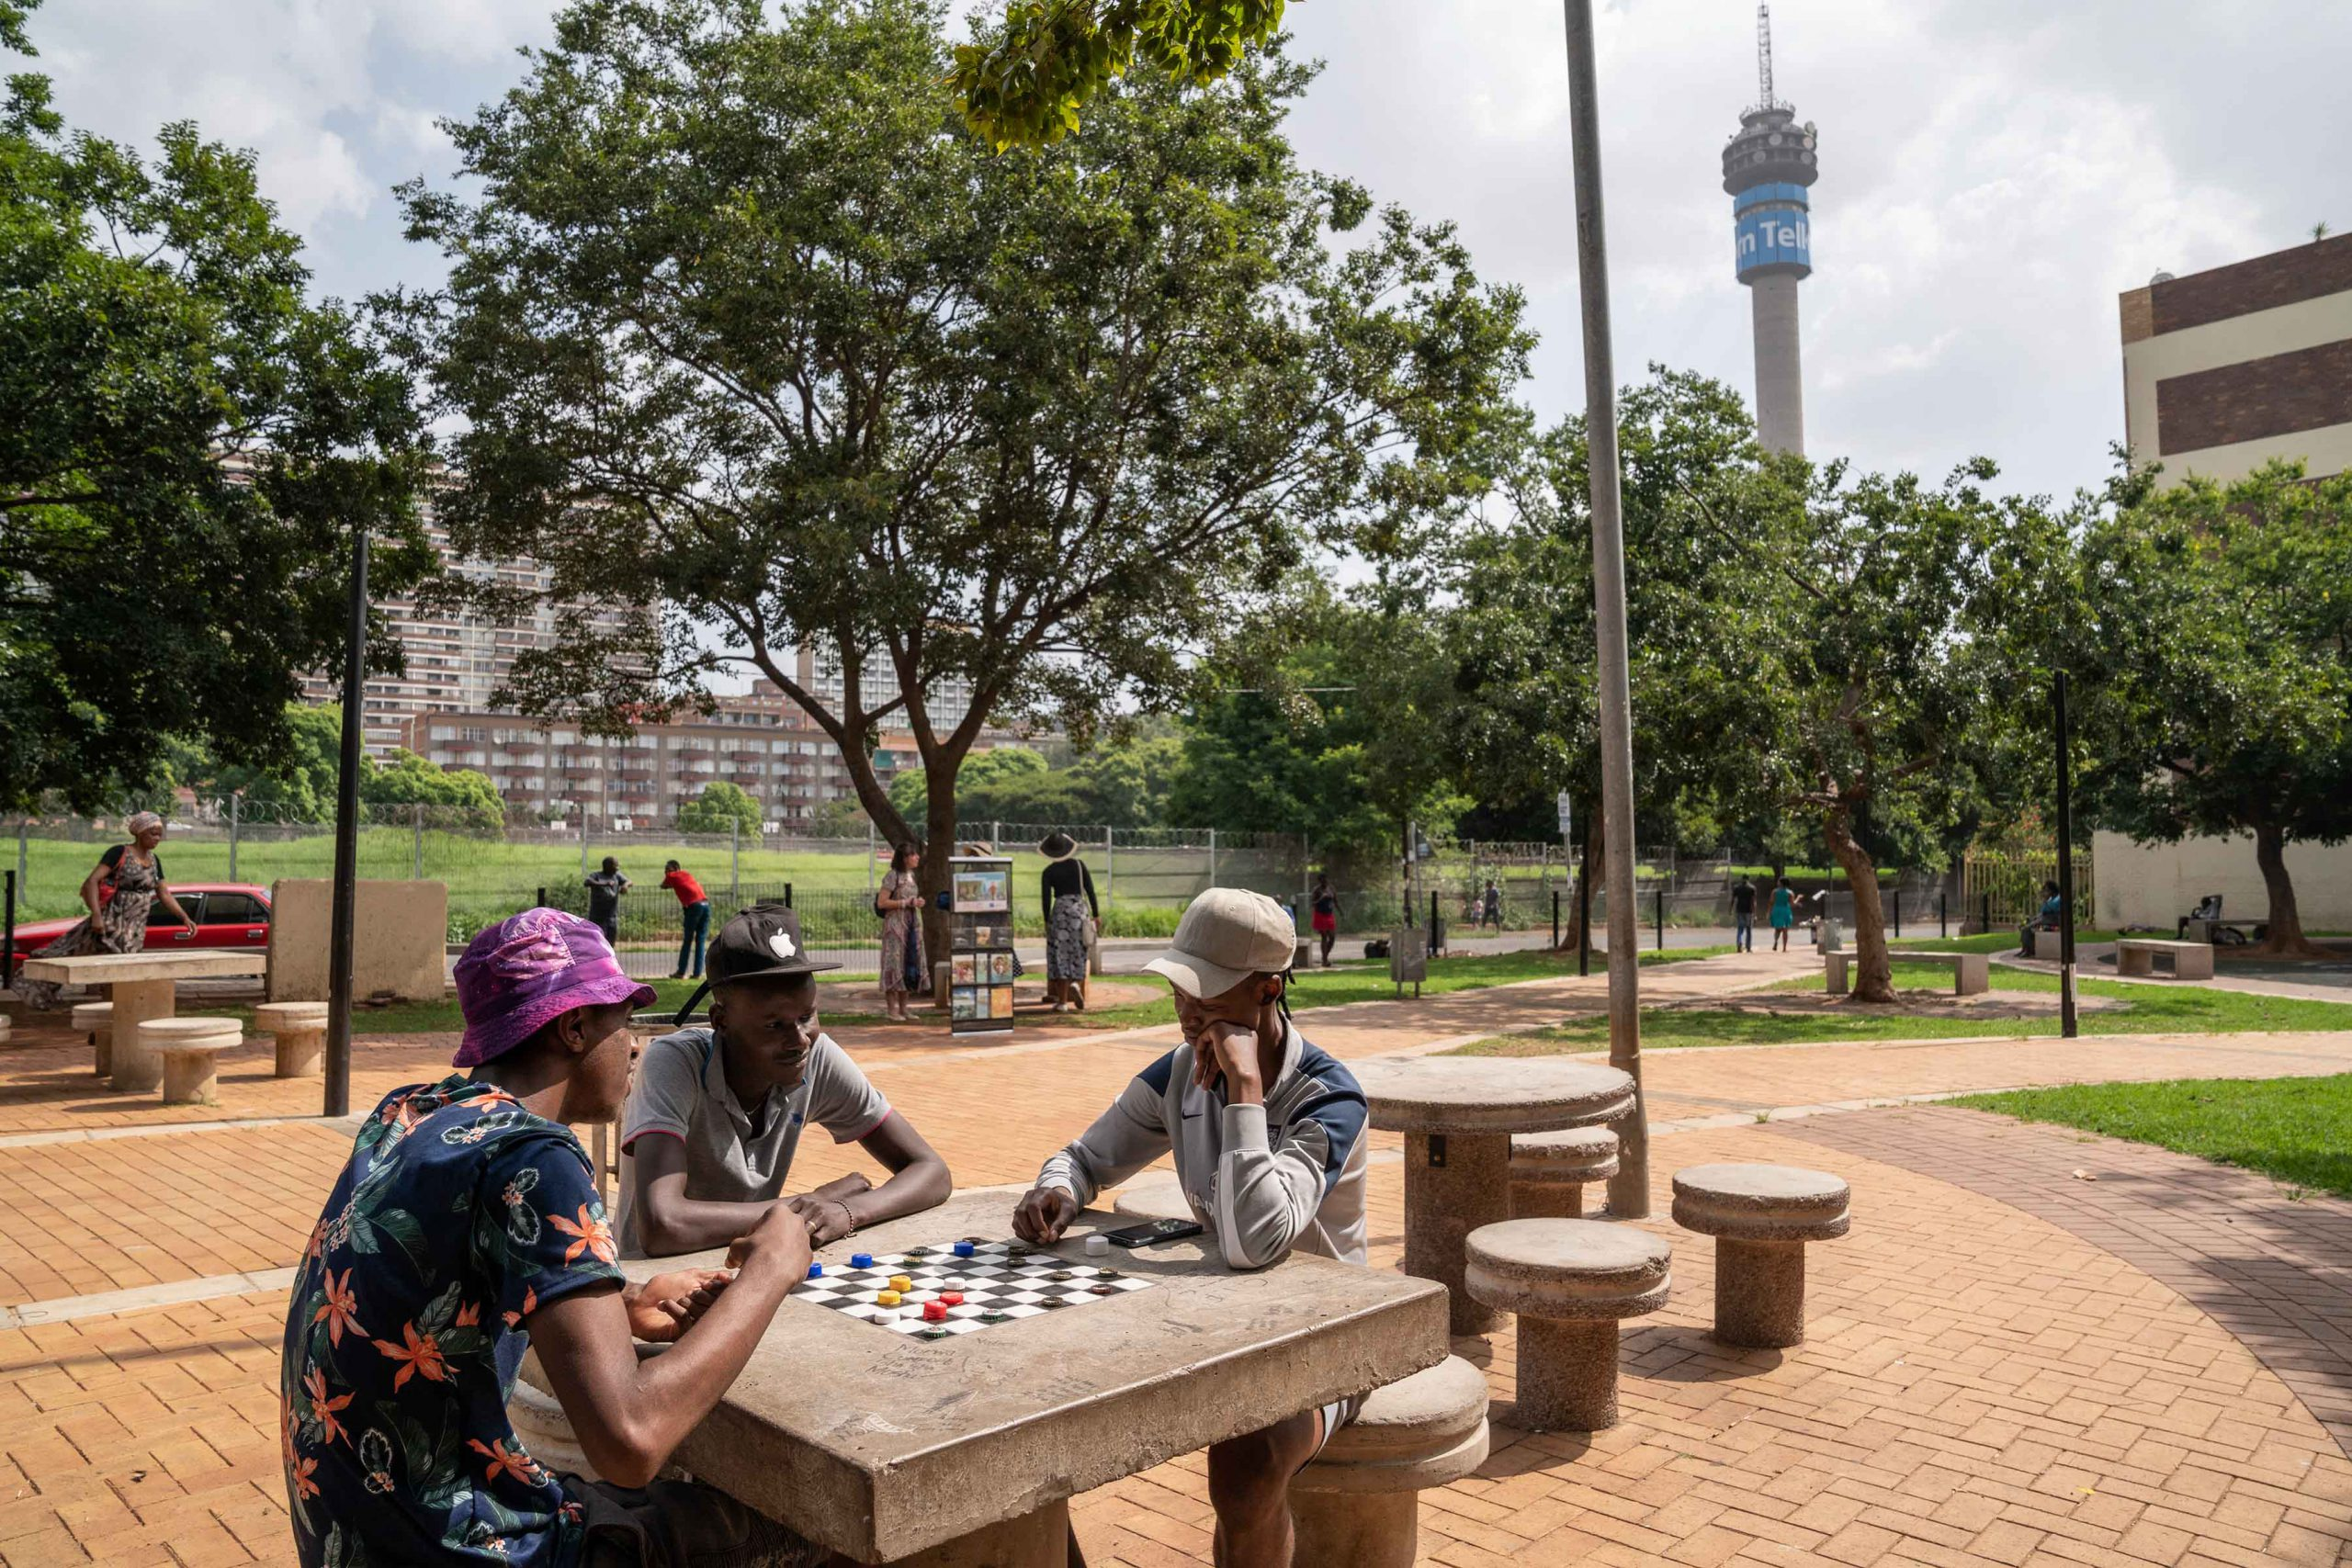 15 January 2020: A game of draughts being played with bottle tops at Barnato Park in the Johannesburg suburb of Berea.